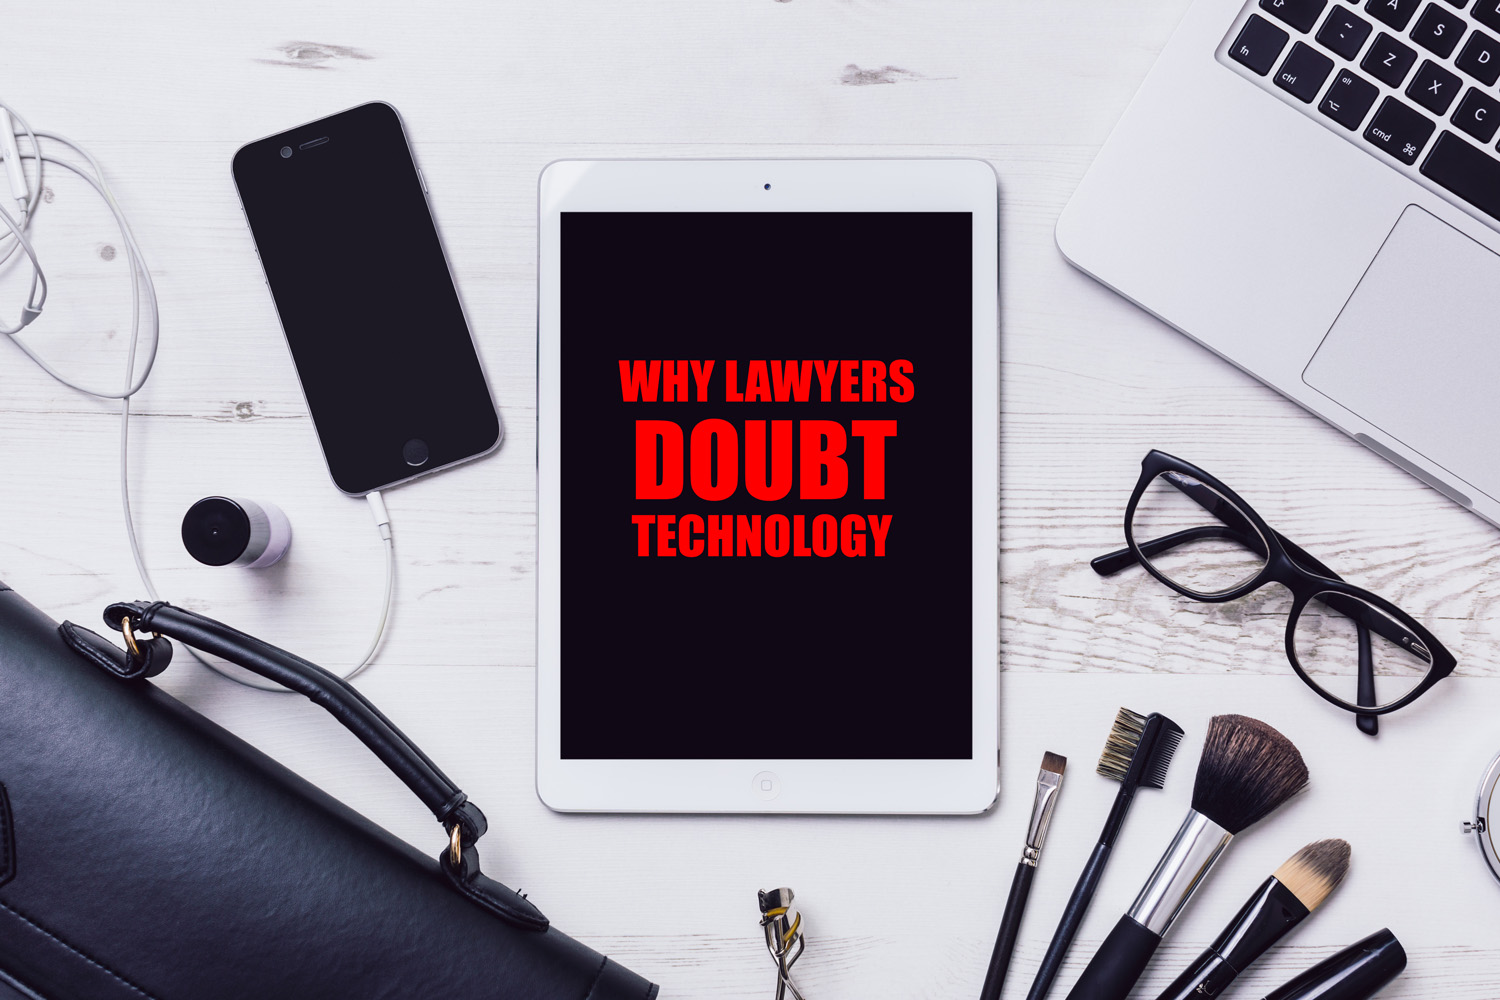 Why Lawyers Doubt Technology